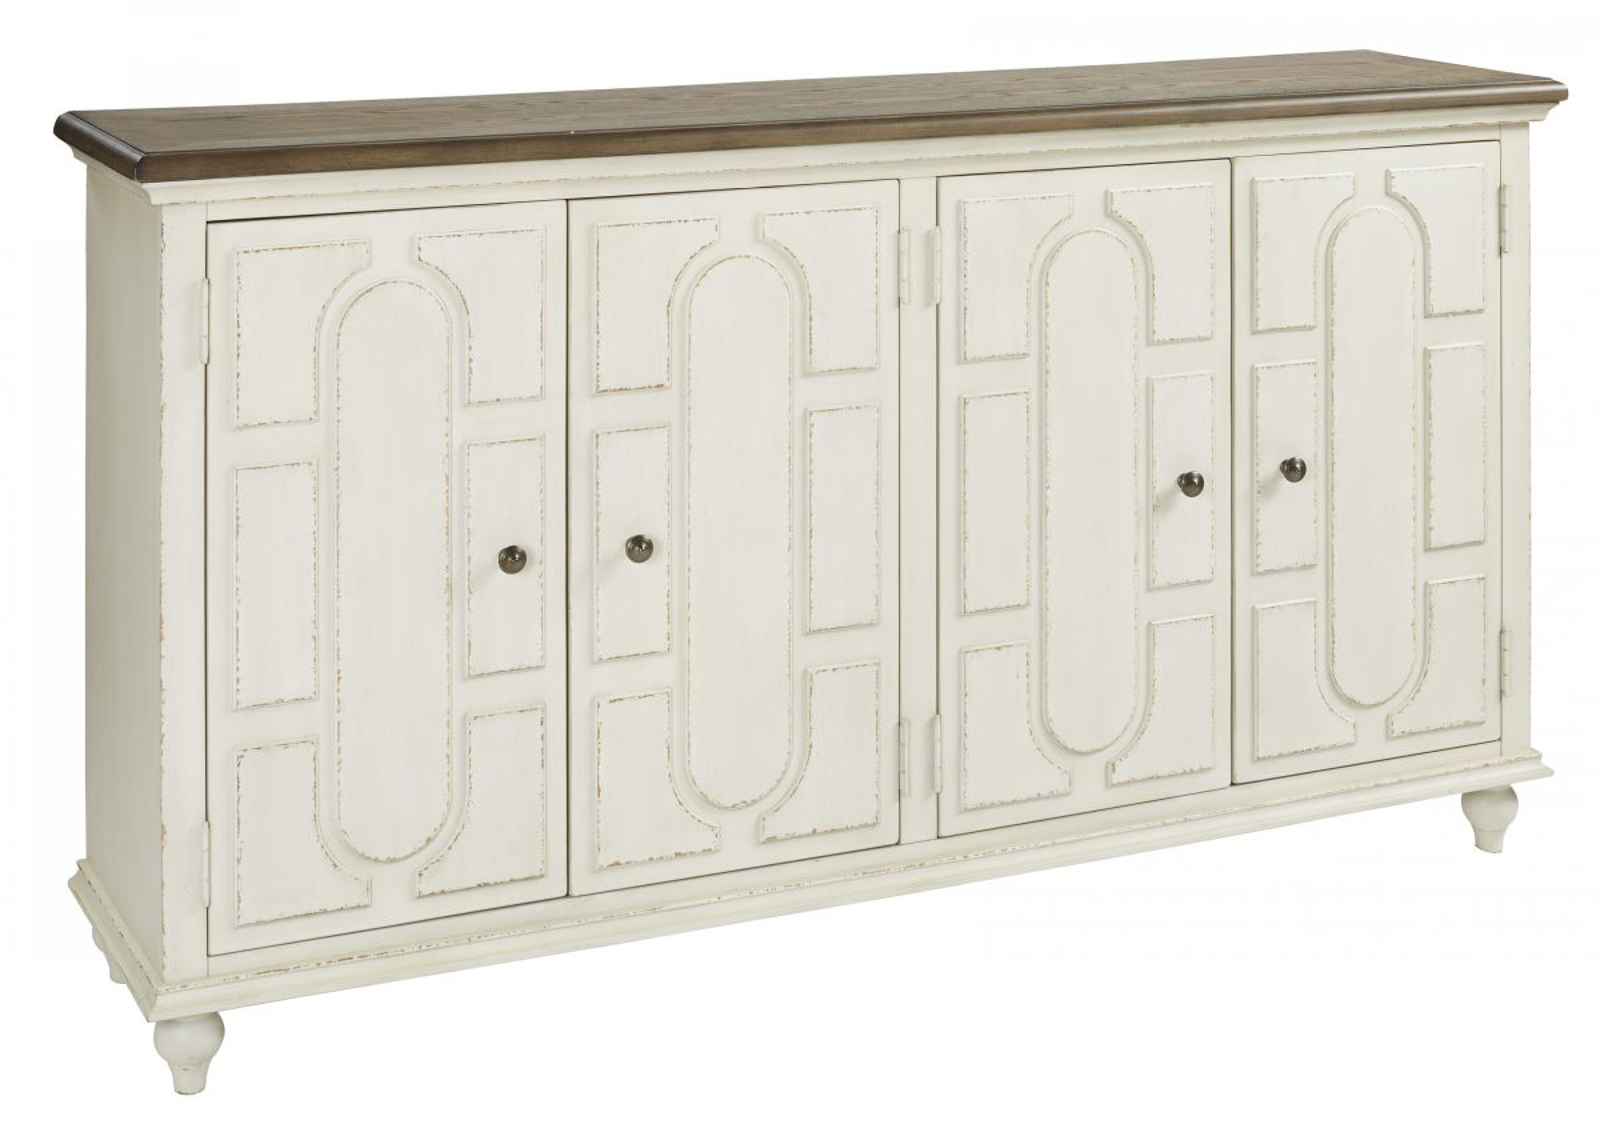 Picture of Roranville Accent Cabinet